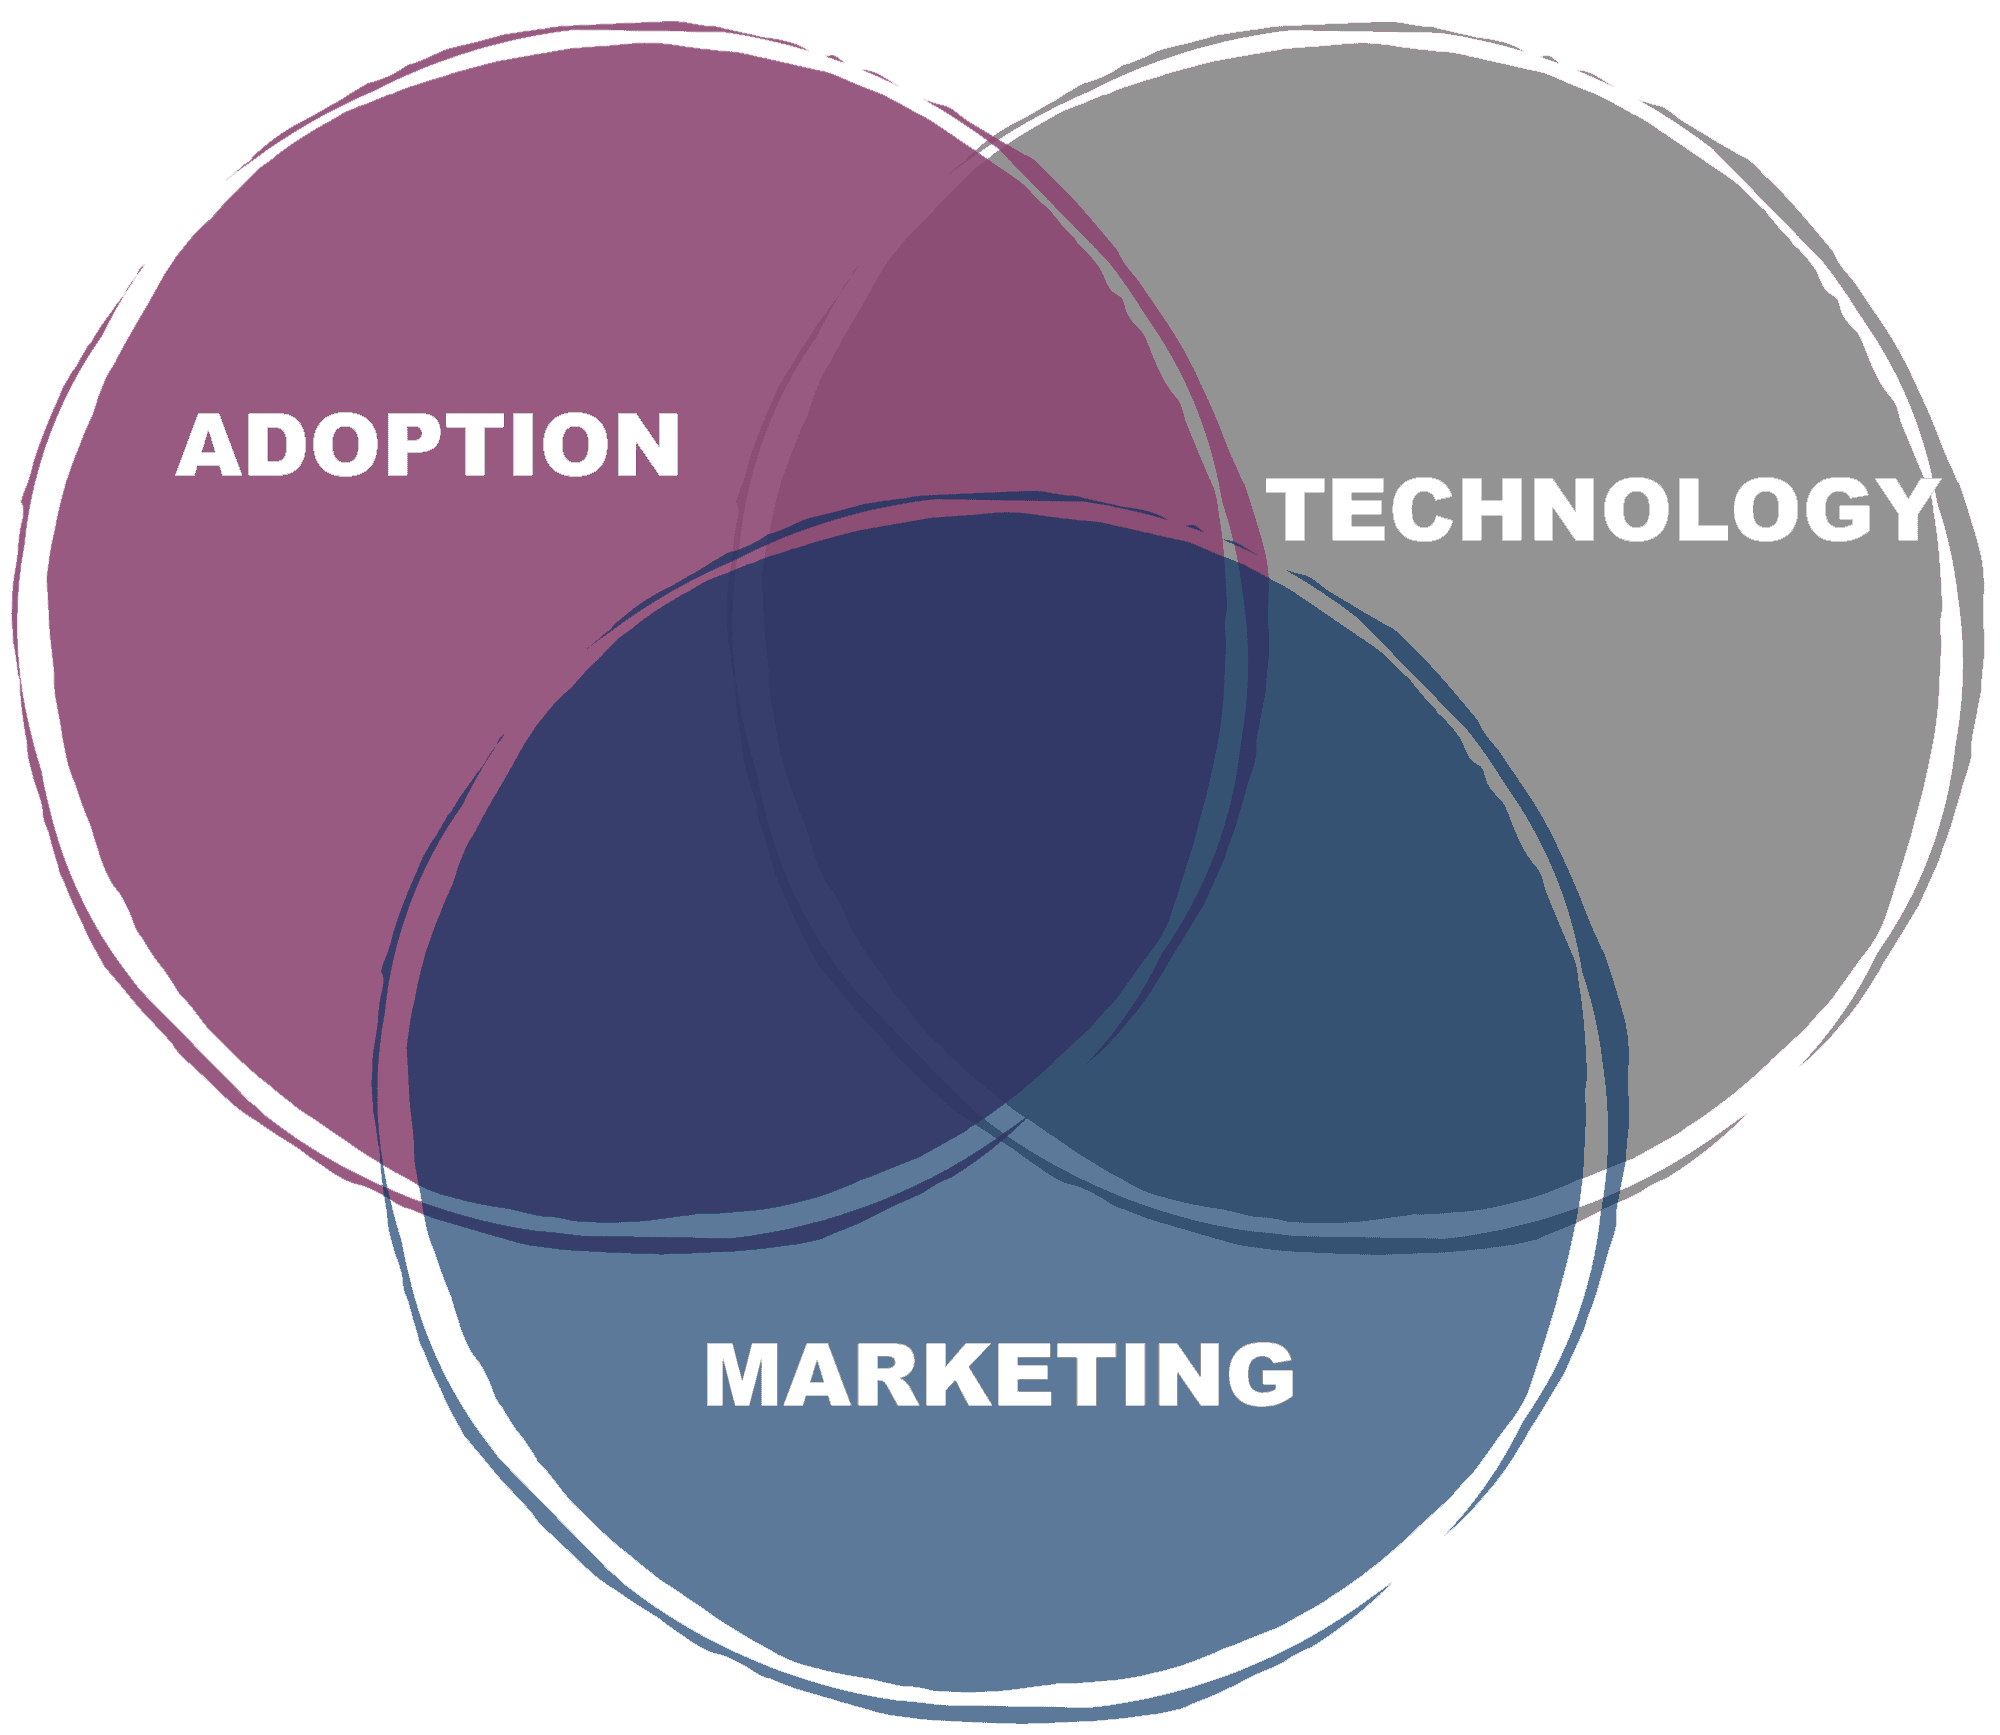 Adoption Marketing Technology